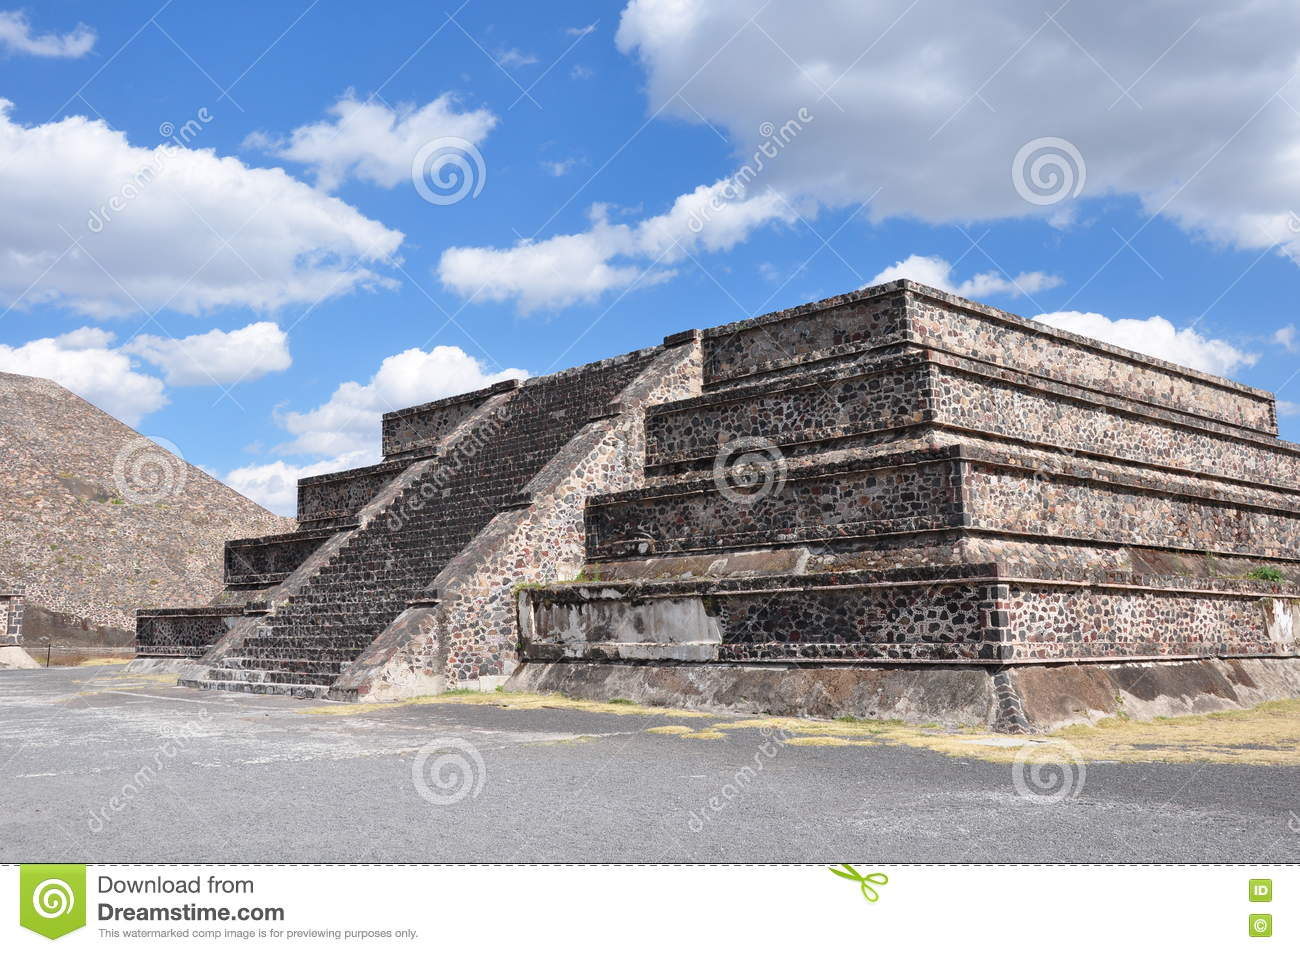 Piramides De Teotihuacan Mexico Stock Image Image Of Mexican City 73981075